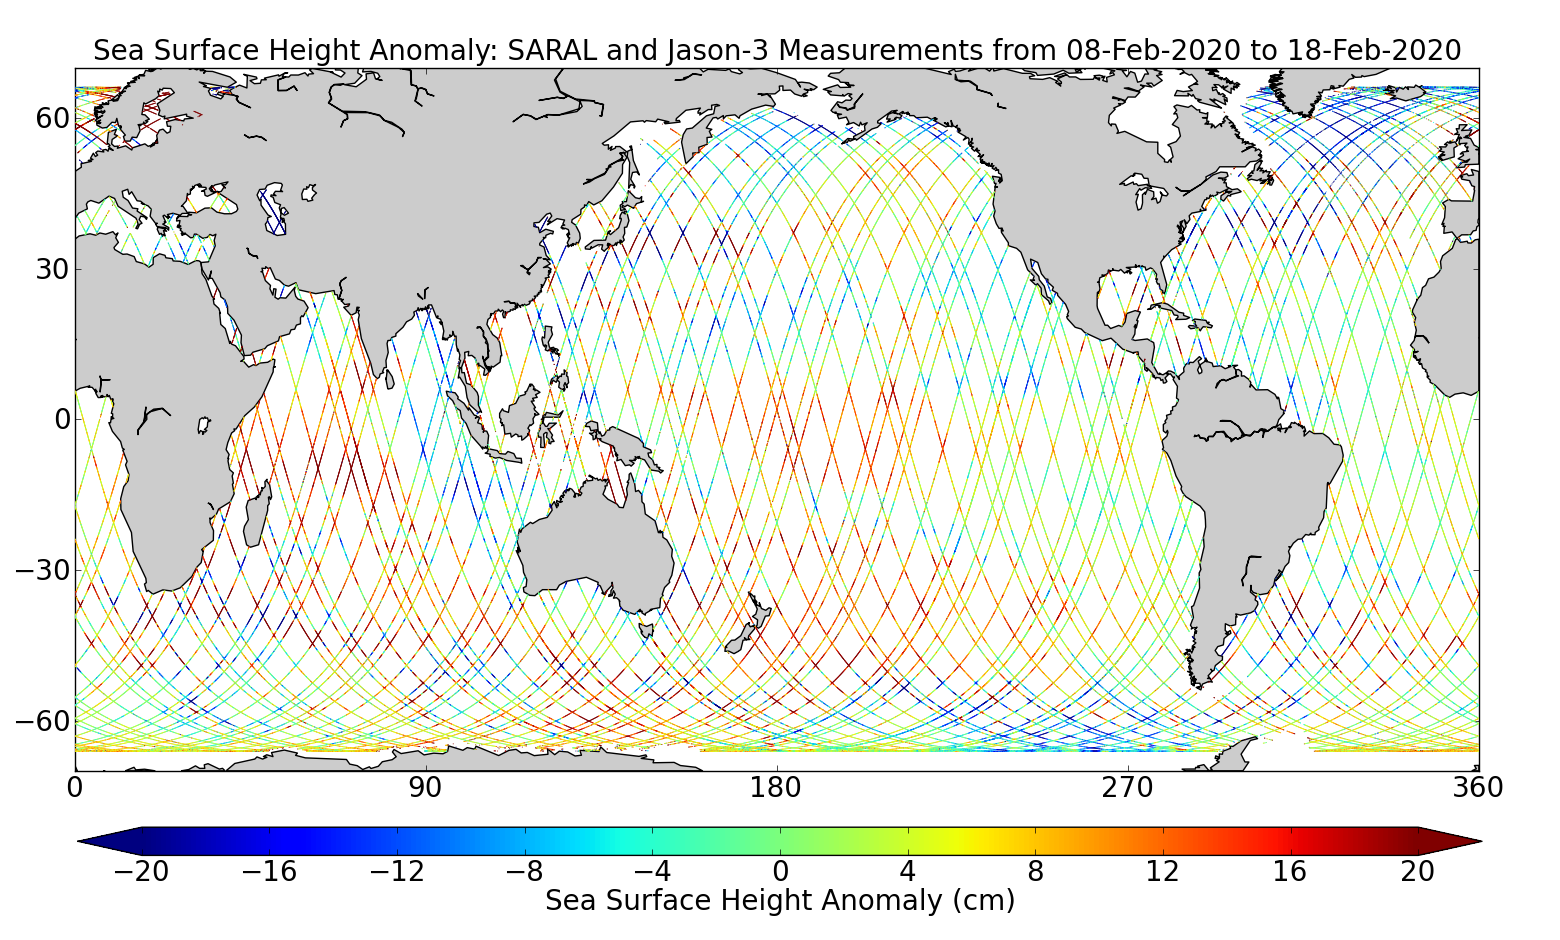 Sea Surface Height Anomaly: SARAL and Jason-3 Measurements from 08-Feb-2020 to 18-Feb-2020